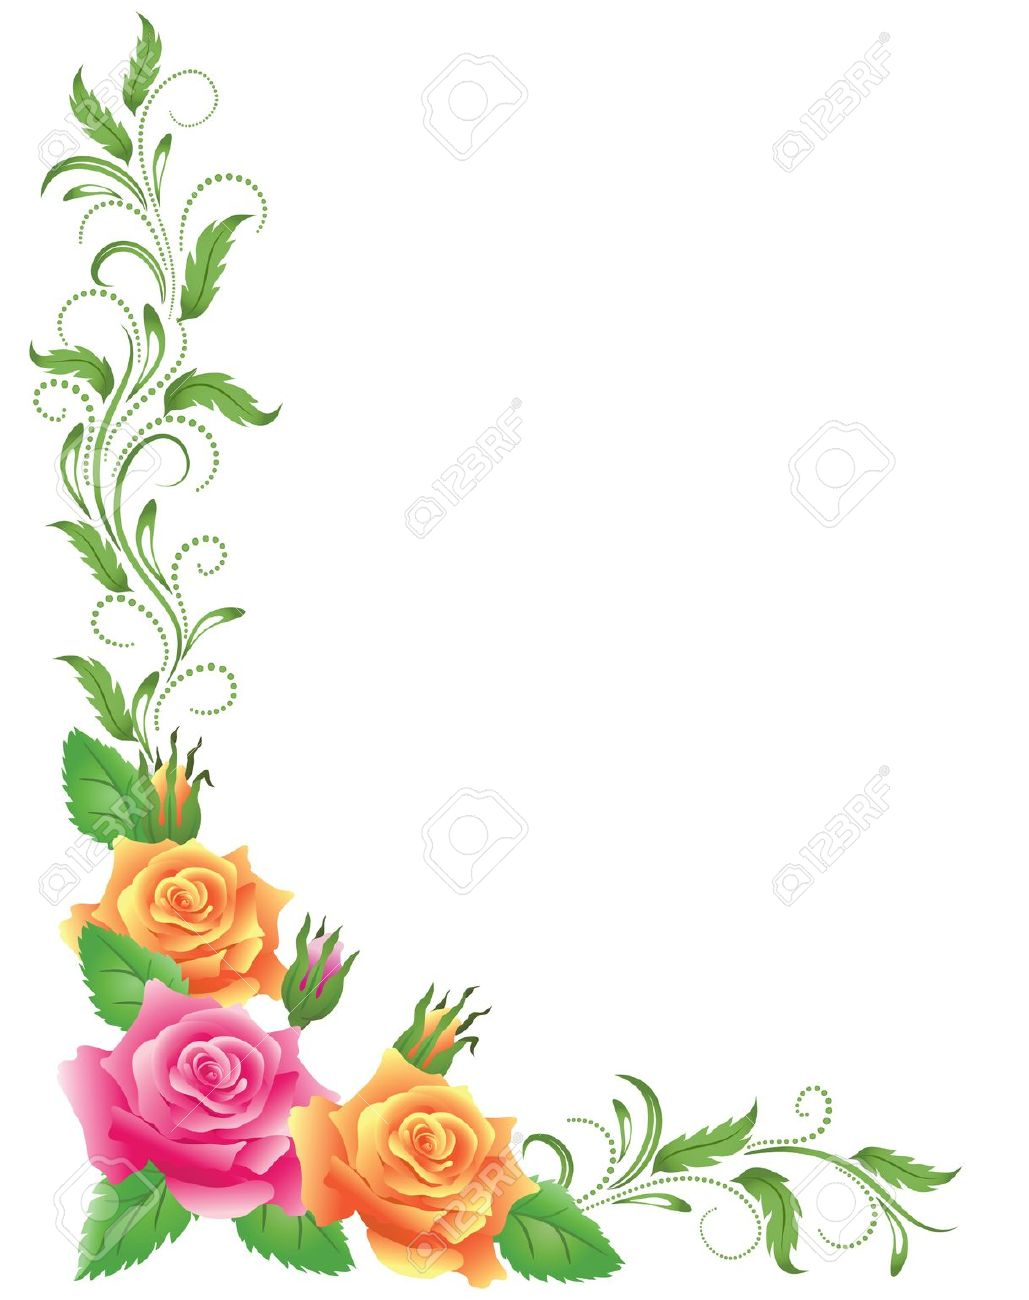 Yellow Flower clipart floral corner Border And Vector Stock Border